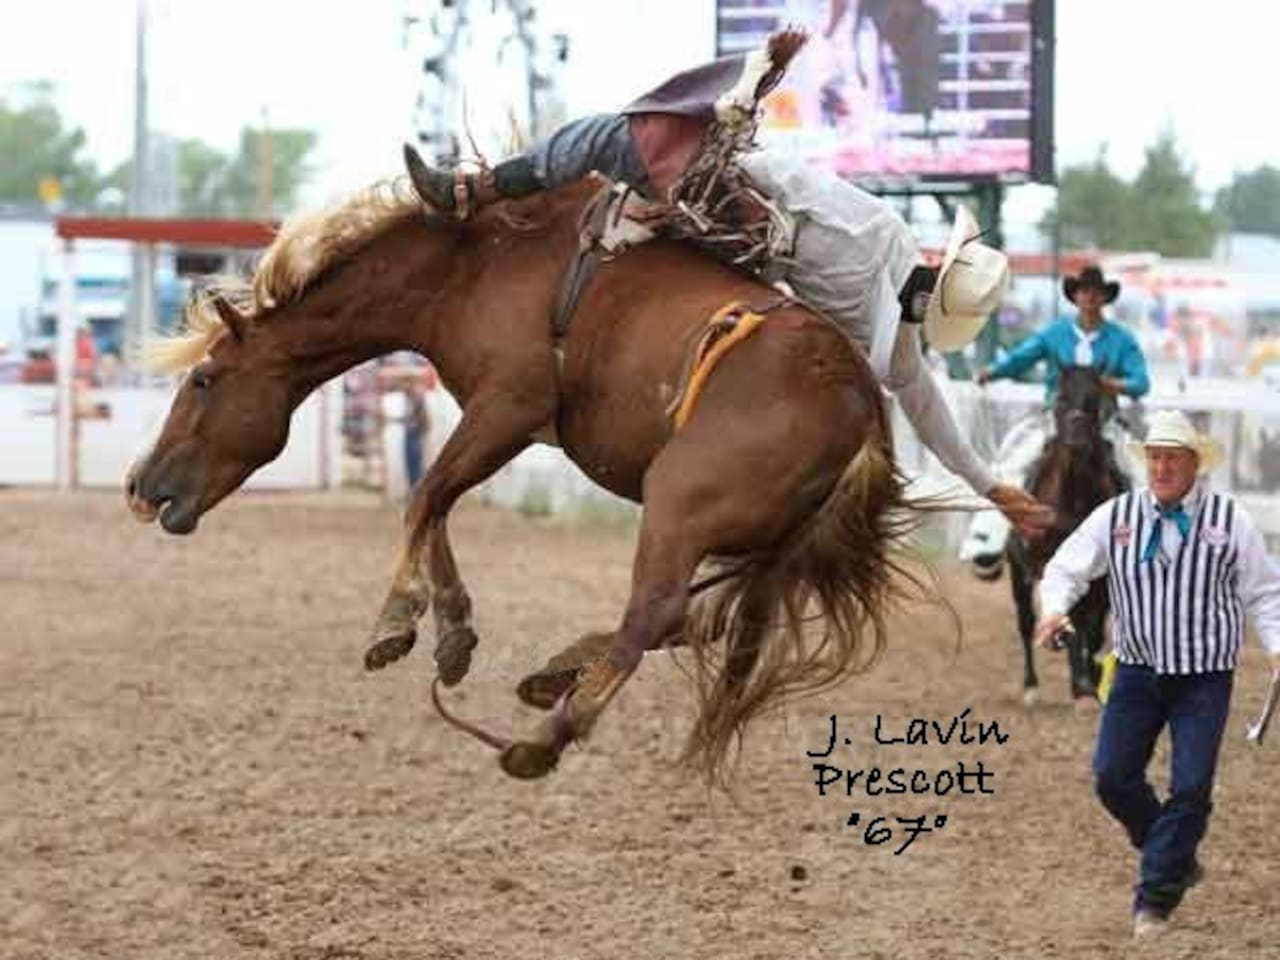 An exciting shot of a real bronc riding cowboy.